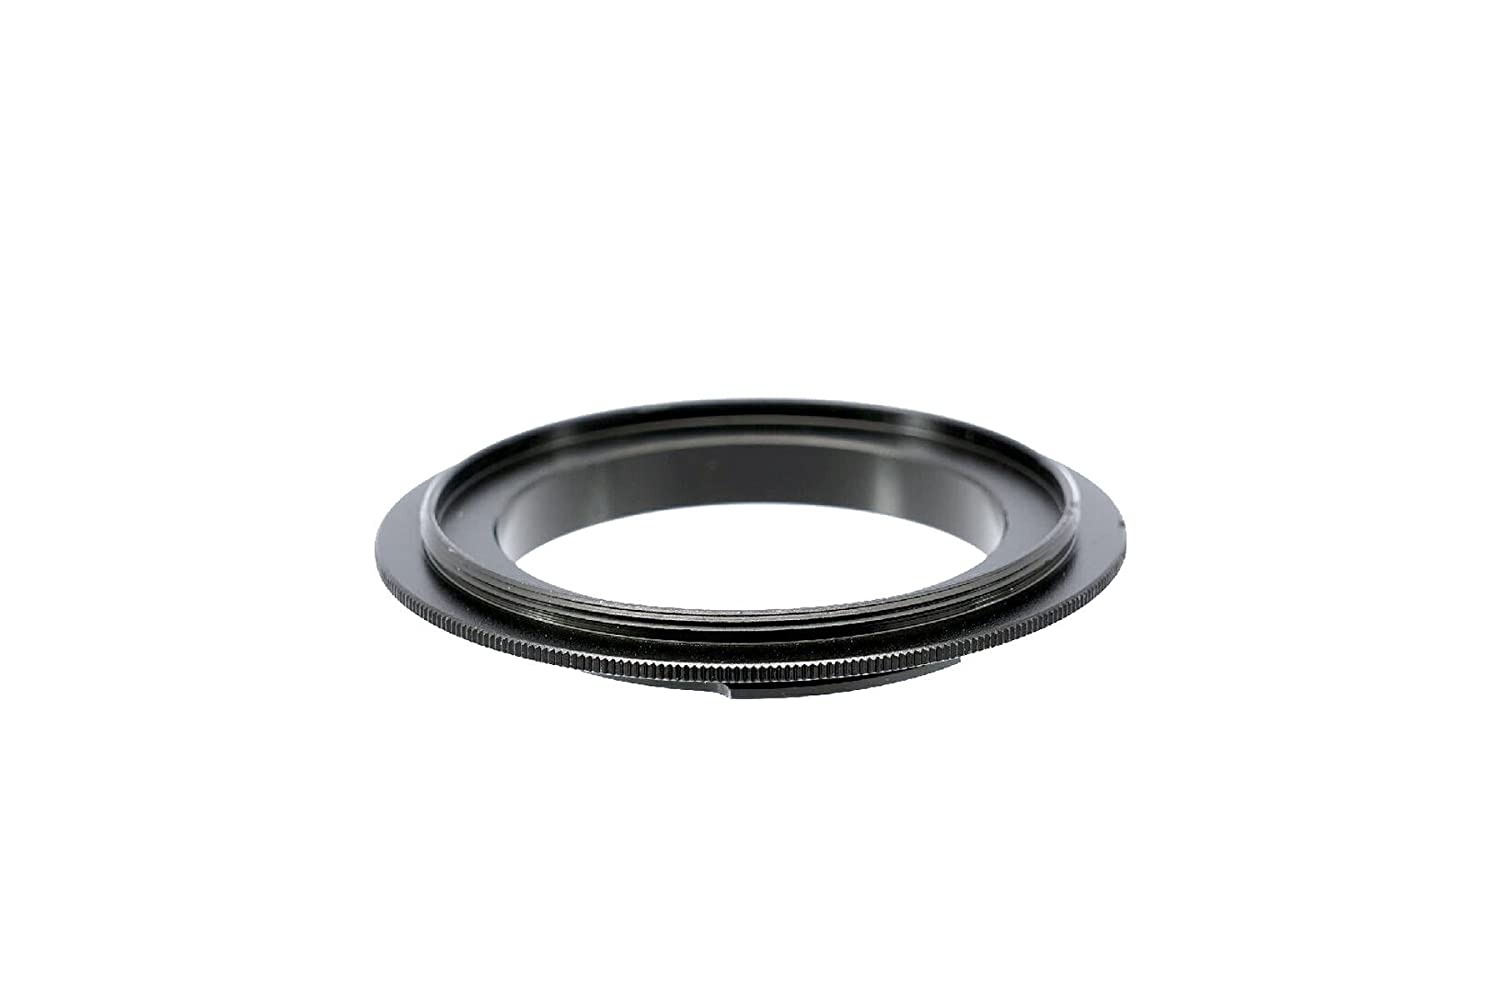 Gadget Place 72mm to 49mm Adapter Ring